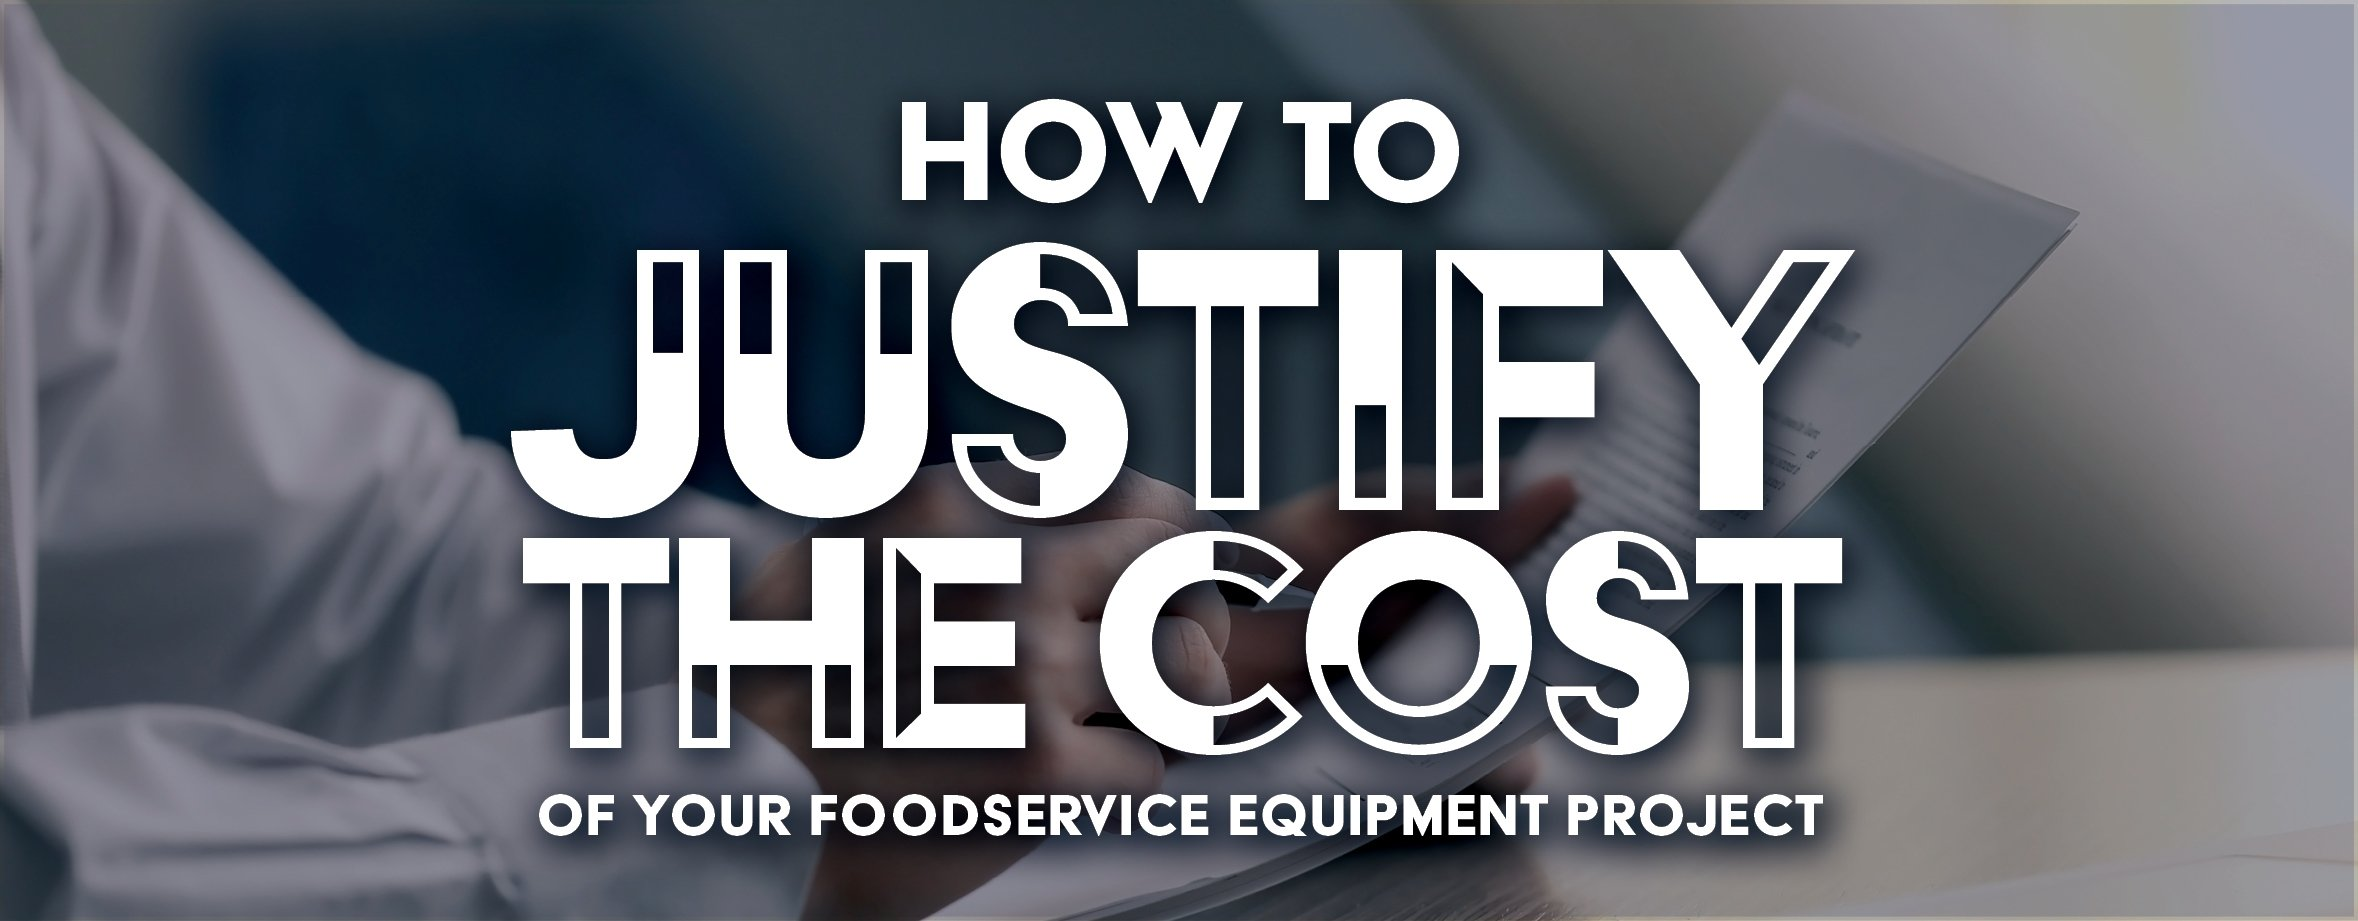 A common problem many healthcare foodservice professionals face is finding a way to get funding approved for new equipment. Having reliable equipment is essential to your success.